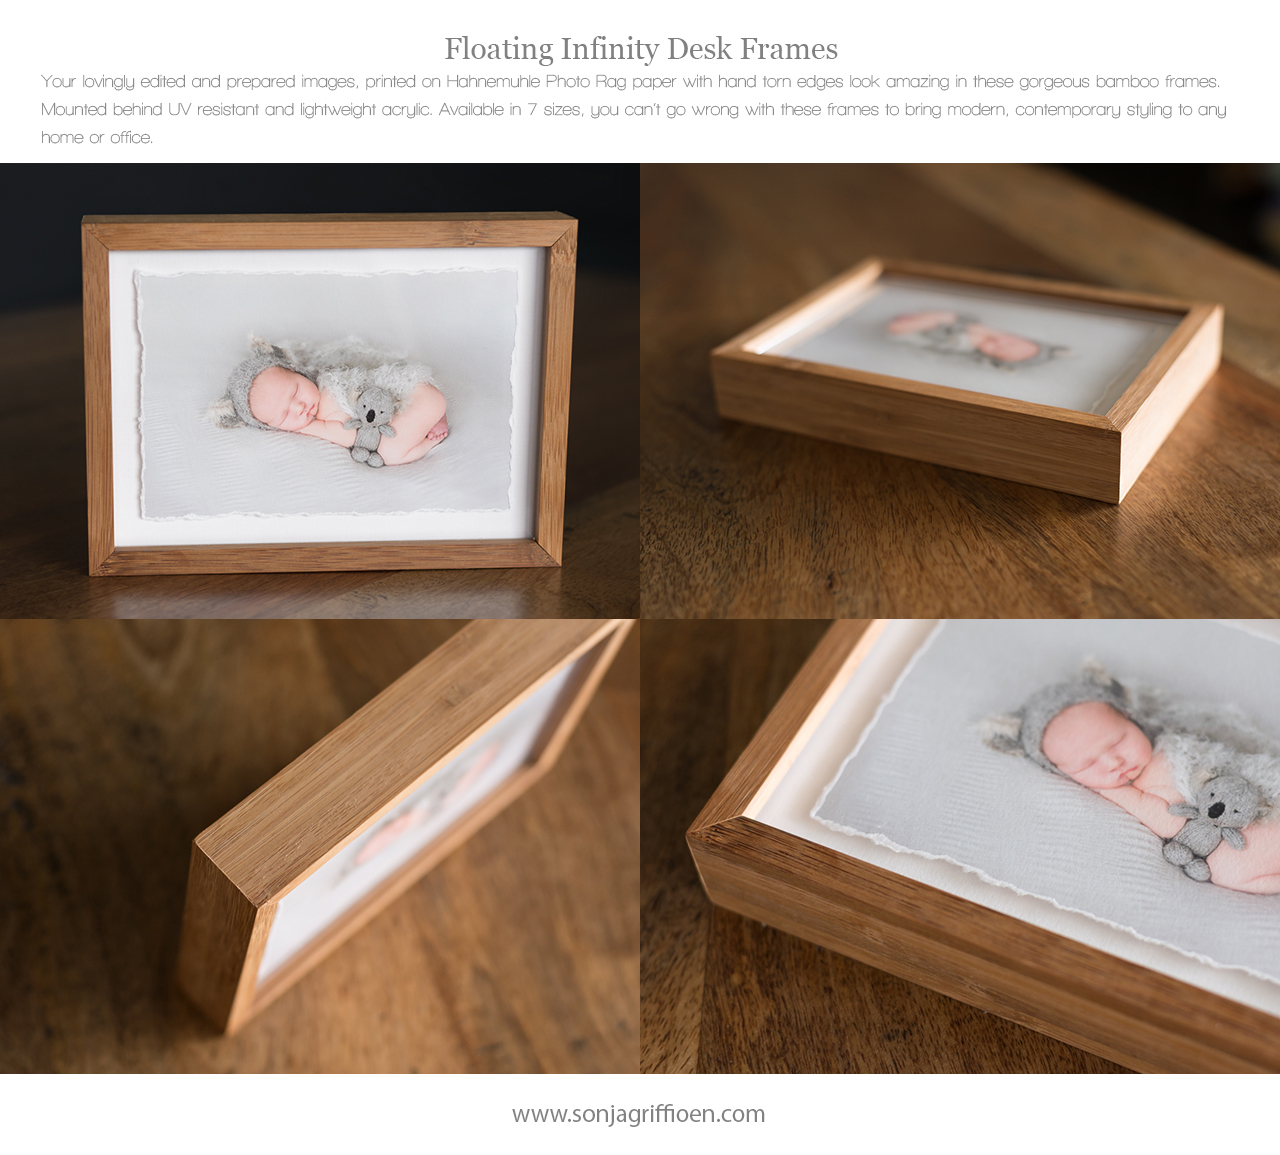 Floating Infinity Desk Frames - Brisbane Newborn Photographer Sonja Griffioen Your lovingly edited and prepared images, printed on Hahnemuhle Photo Rag paper with hand torn edges look amazing in these gorgeous bamboo frames. Mounted behind UV resistant and lightweight acrylic. Available in 7 sizes, you can't go wrong with these frames to bring modern, contemporary styling to any home or office.